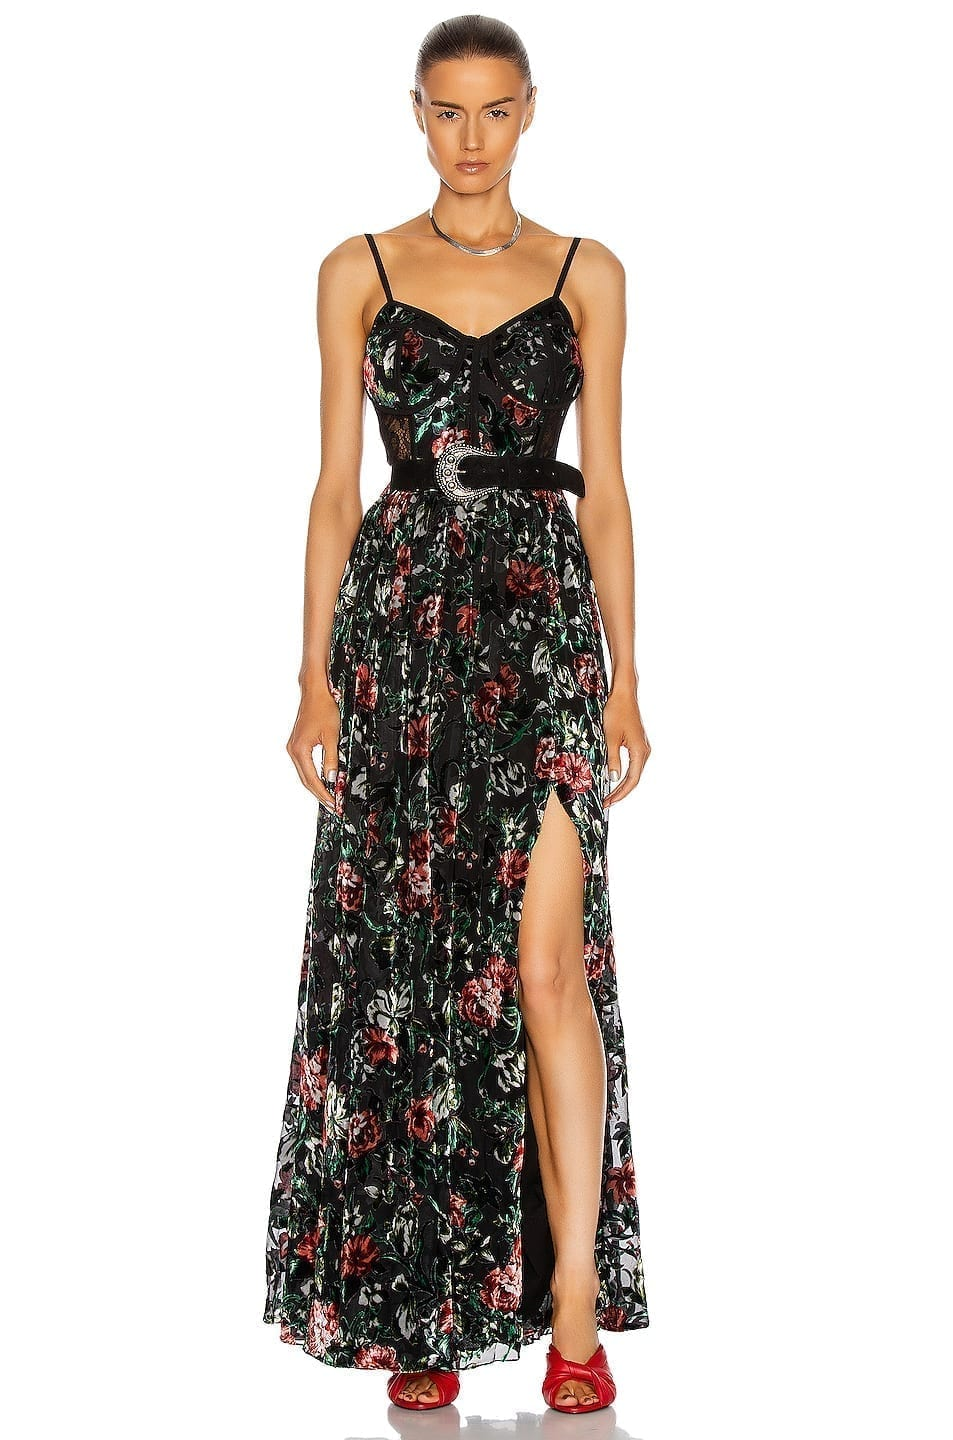 PATBO Floral Burnout Bustier Dress